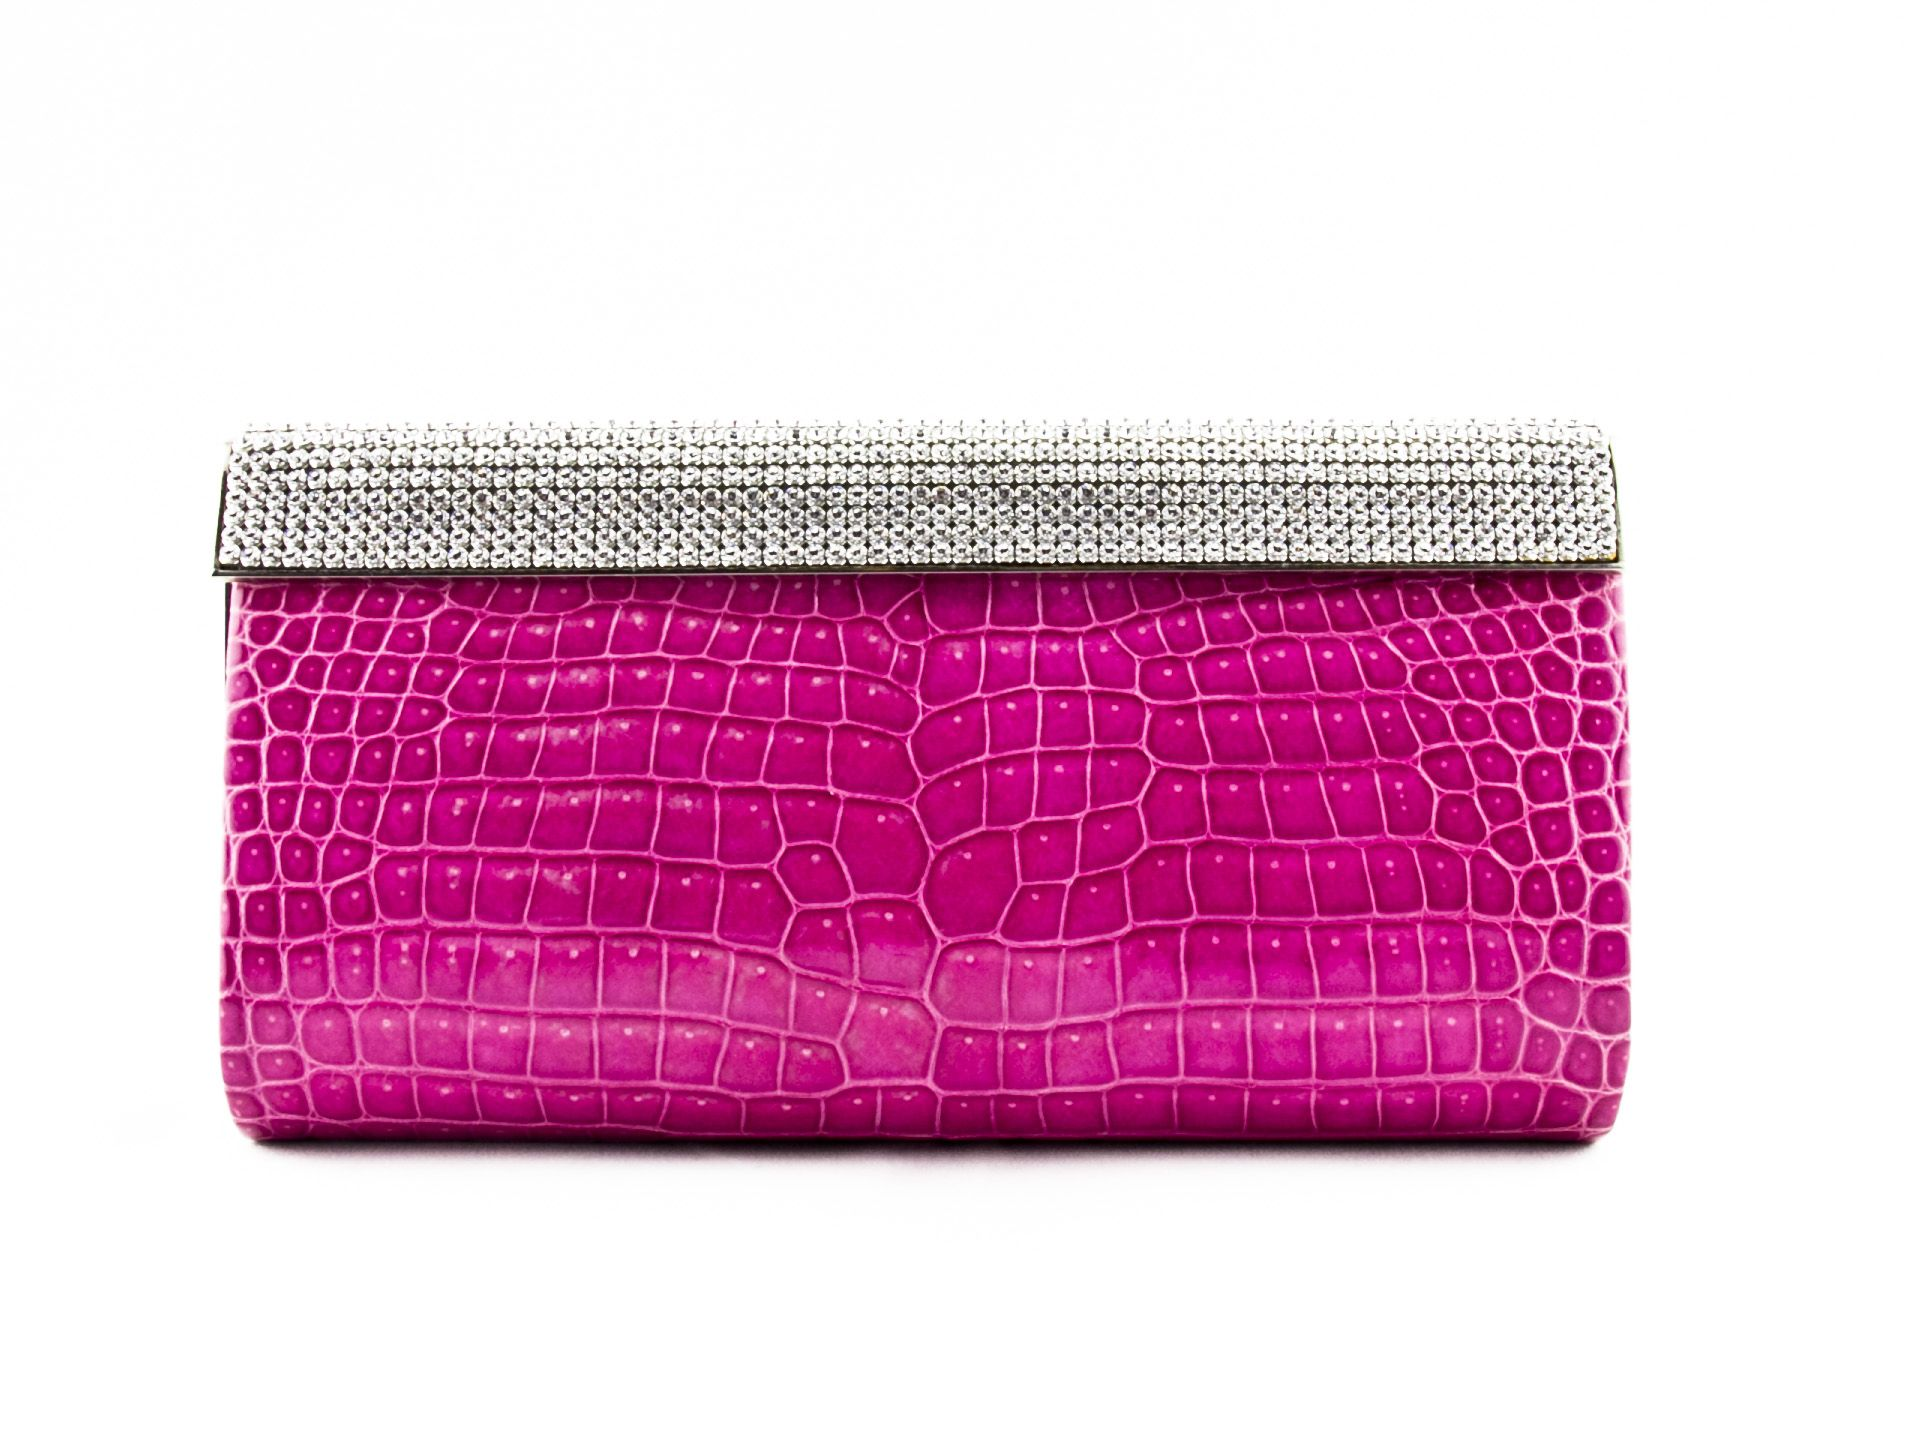 Leu Locati crystalized Swarovski exotic crocodile clutch